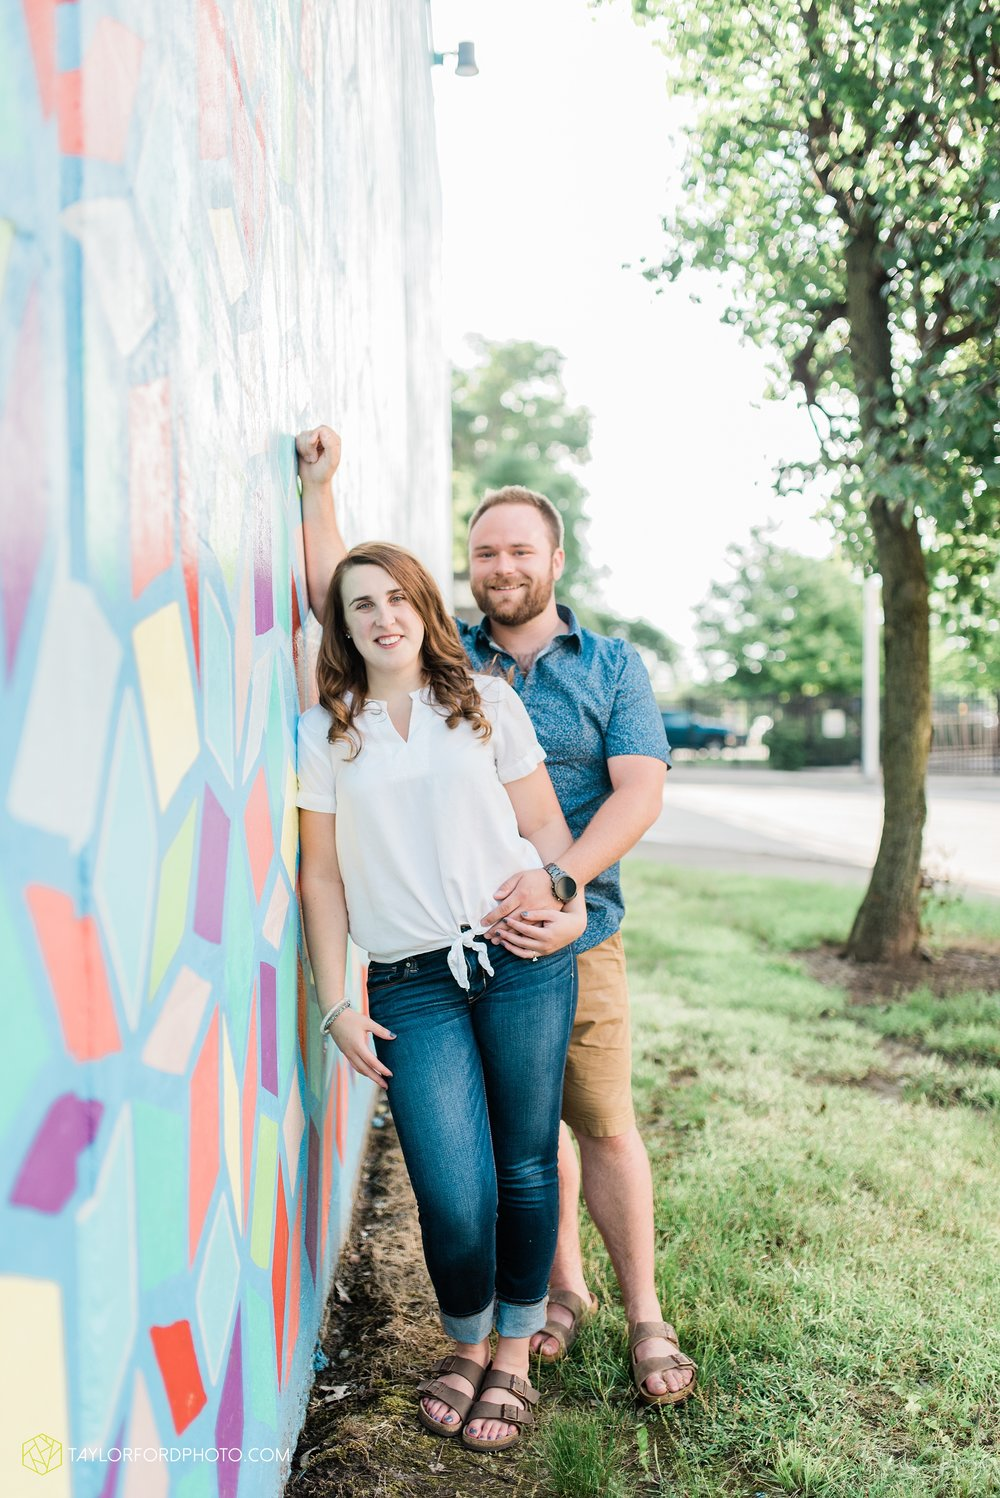 chelsey-jackson-young-downtown-fort-wayne-indiana-the-halls-deck-engagement-wedding-photographer-Taylor-Ford-Photography_8209.jpg